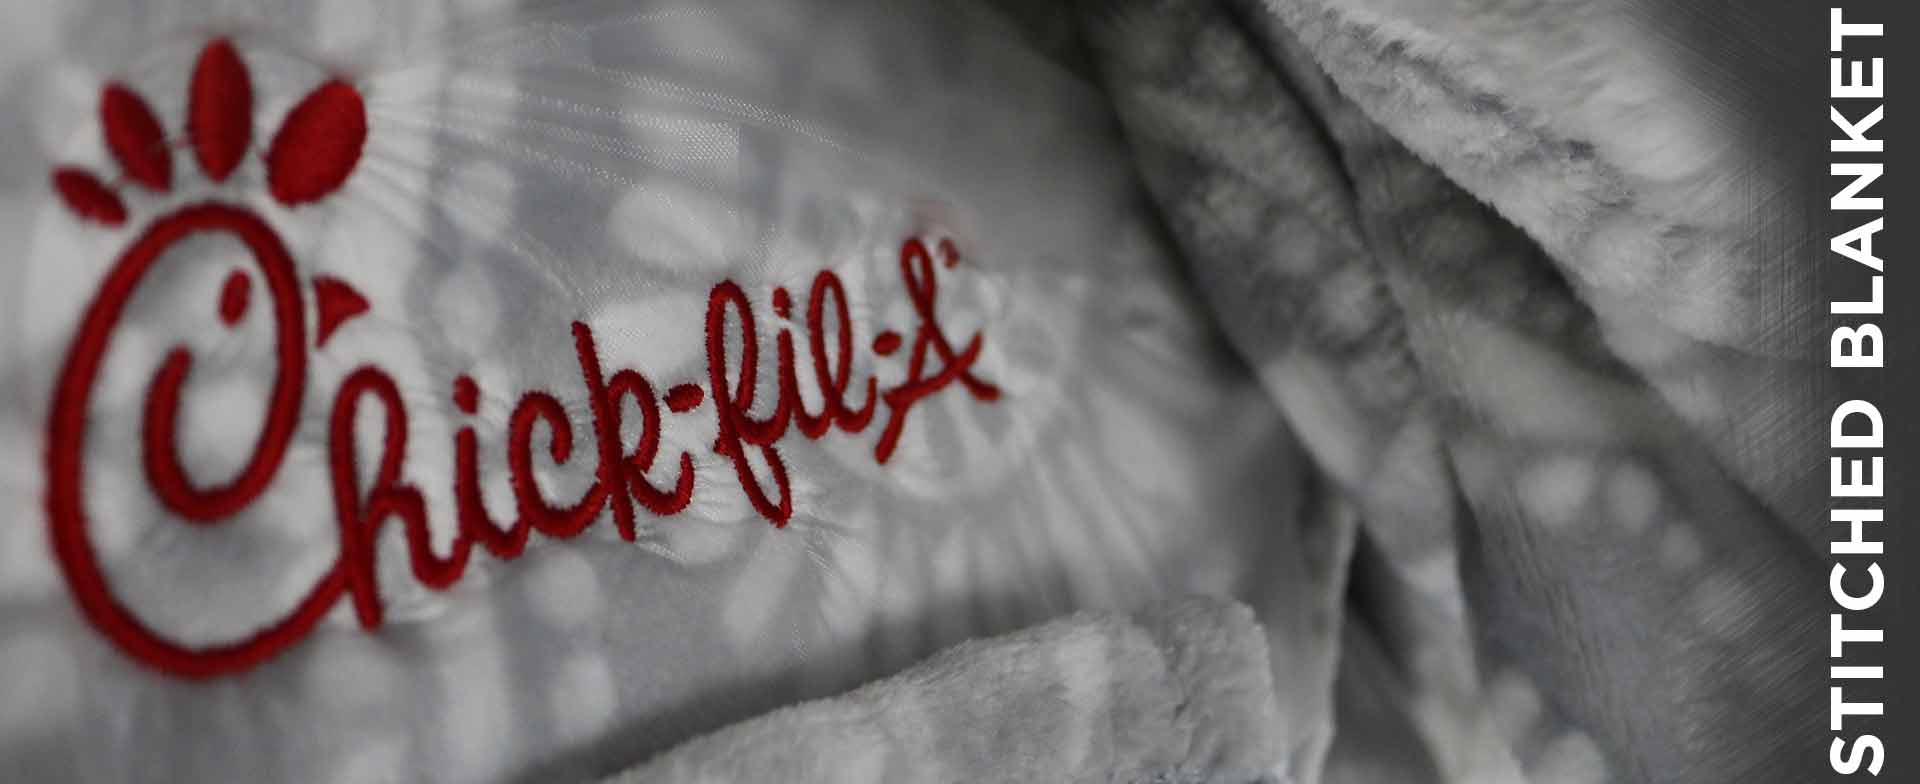 Chick Fil A Embroidered Blanket